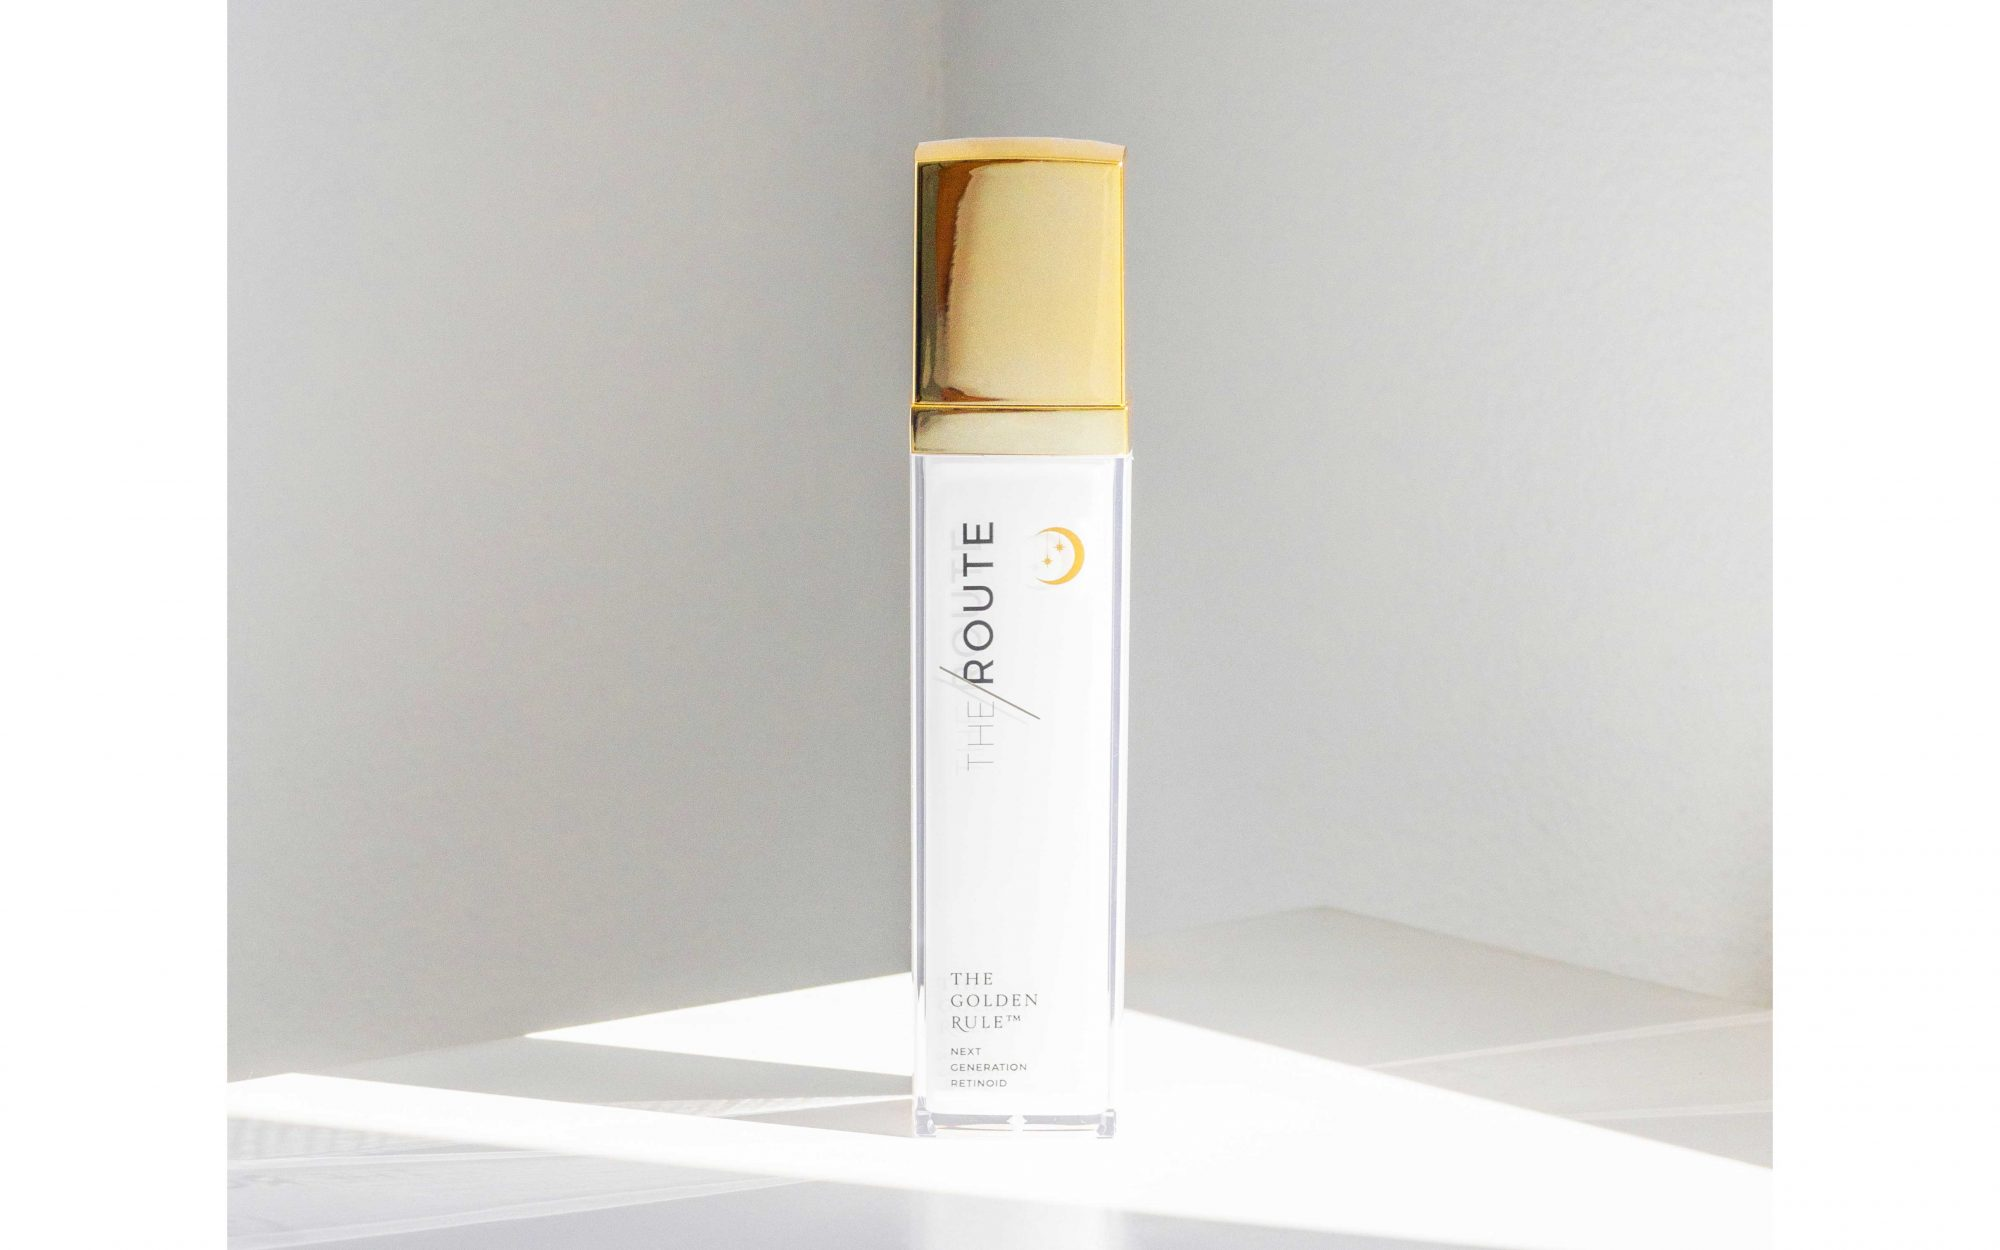 To Get: The Route Golden Rule Retinol